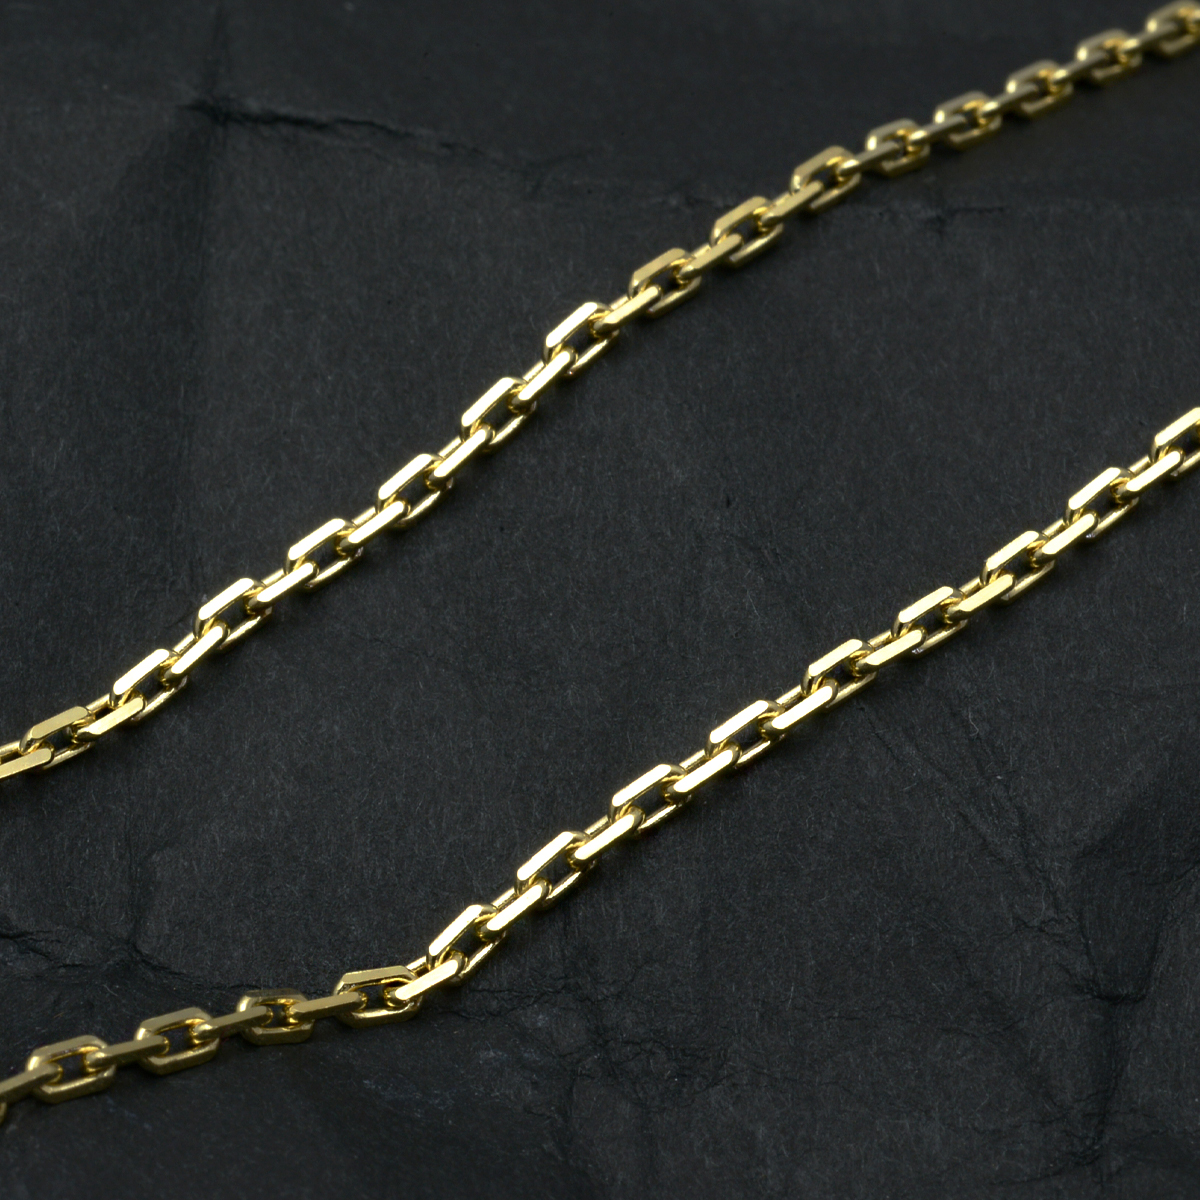 k18ネックレス K18 イエローゴールド メンズ 男性 カットアズキチェーン 幅1.9mm チェーン 50cm/ プレゼント ギフト gold necklace ach1662c50